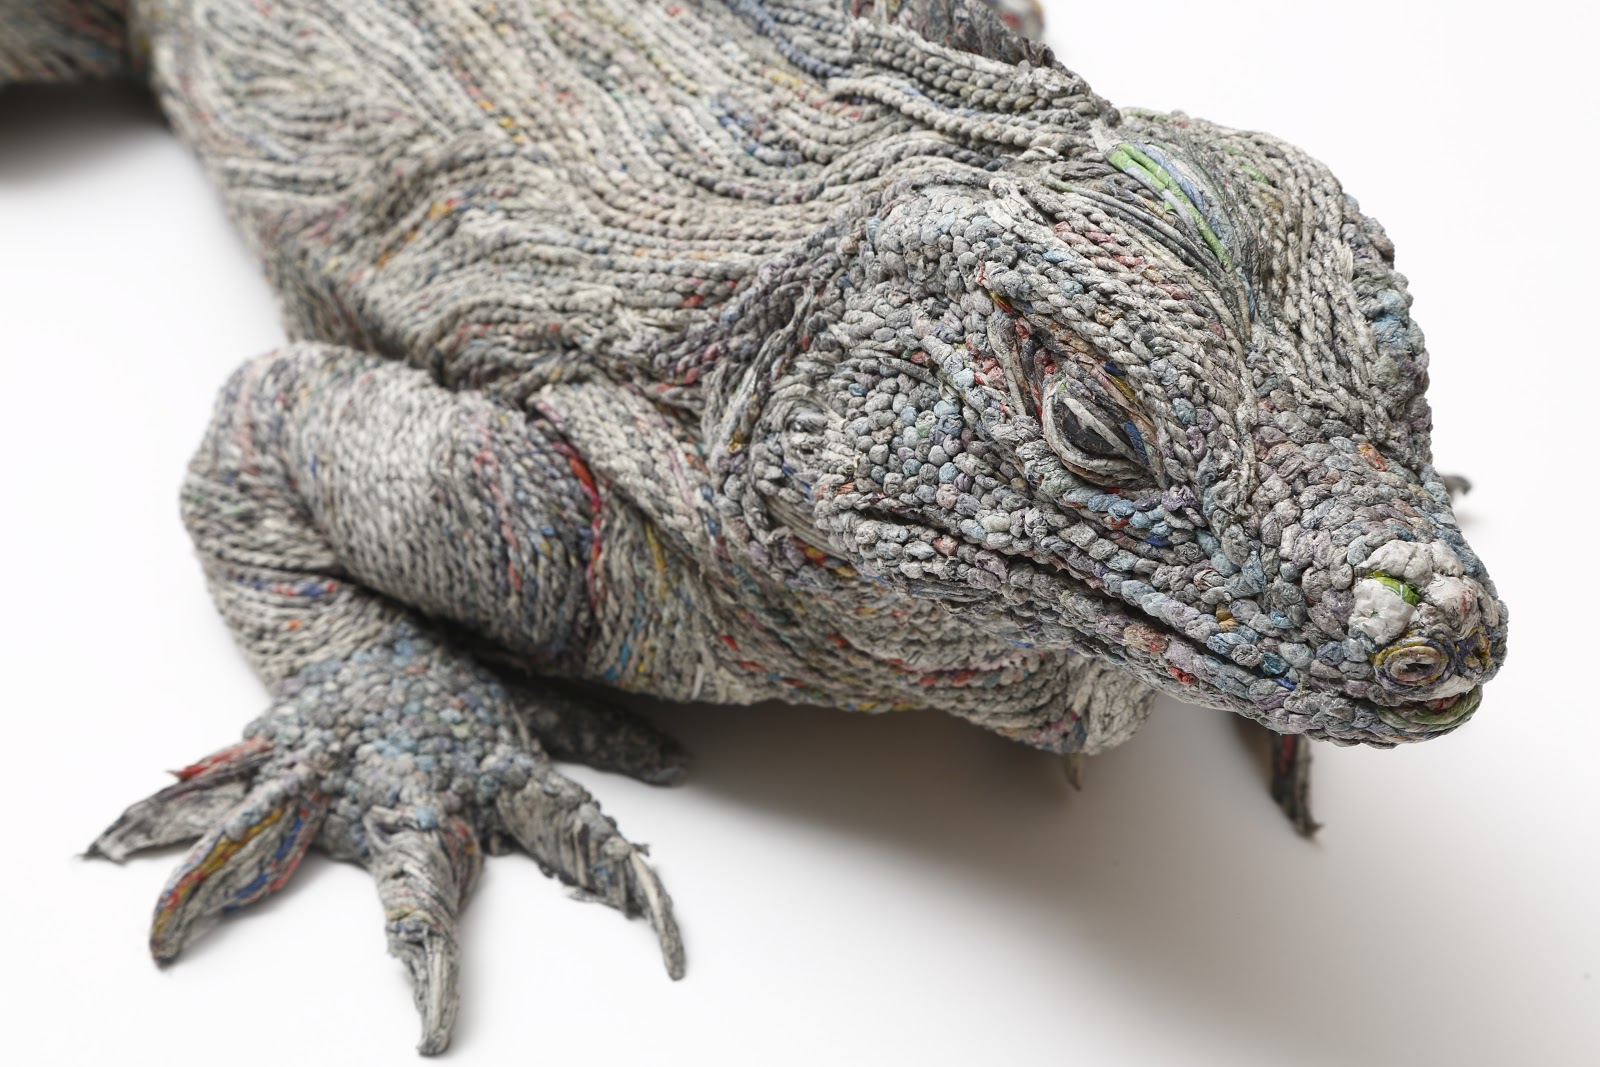 04-Comodo-Dragon-Detail-Hitotsuyama-Studio-Chie-Hitotsuyama-Upcycling-Paper-to-make-Animal-Sculptures-www-designstack-co